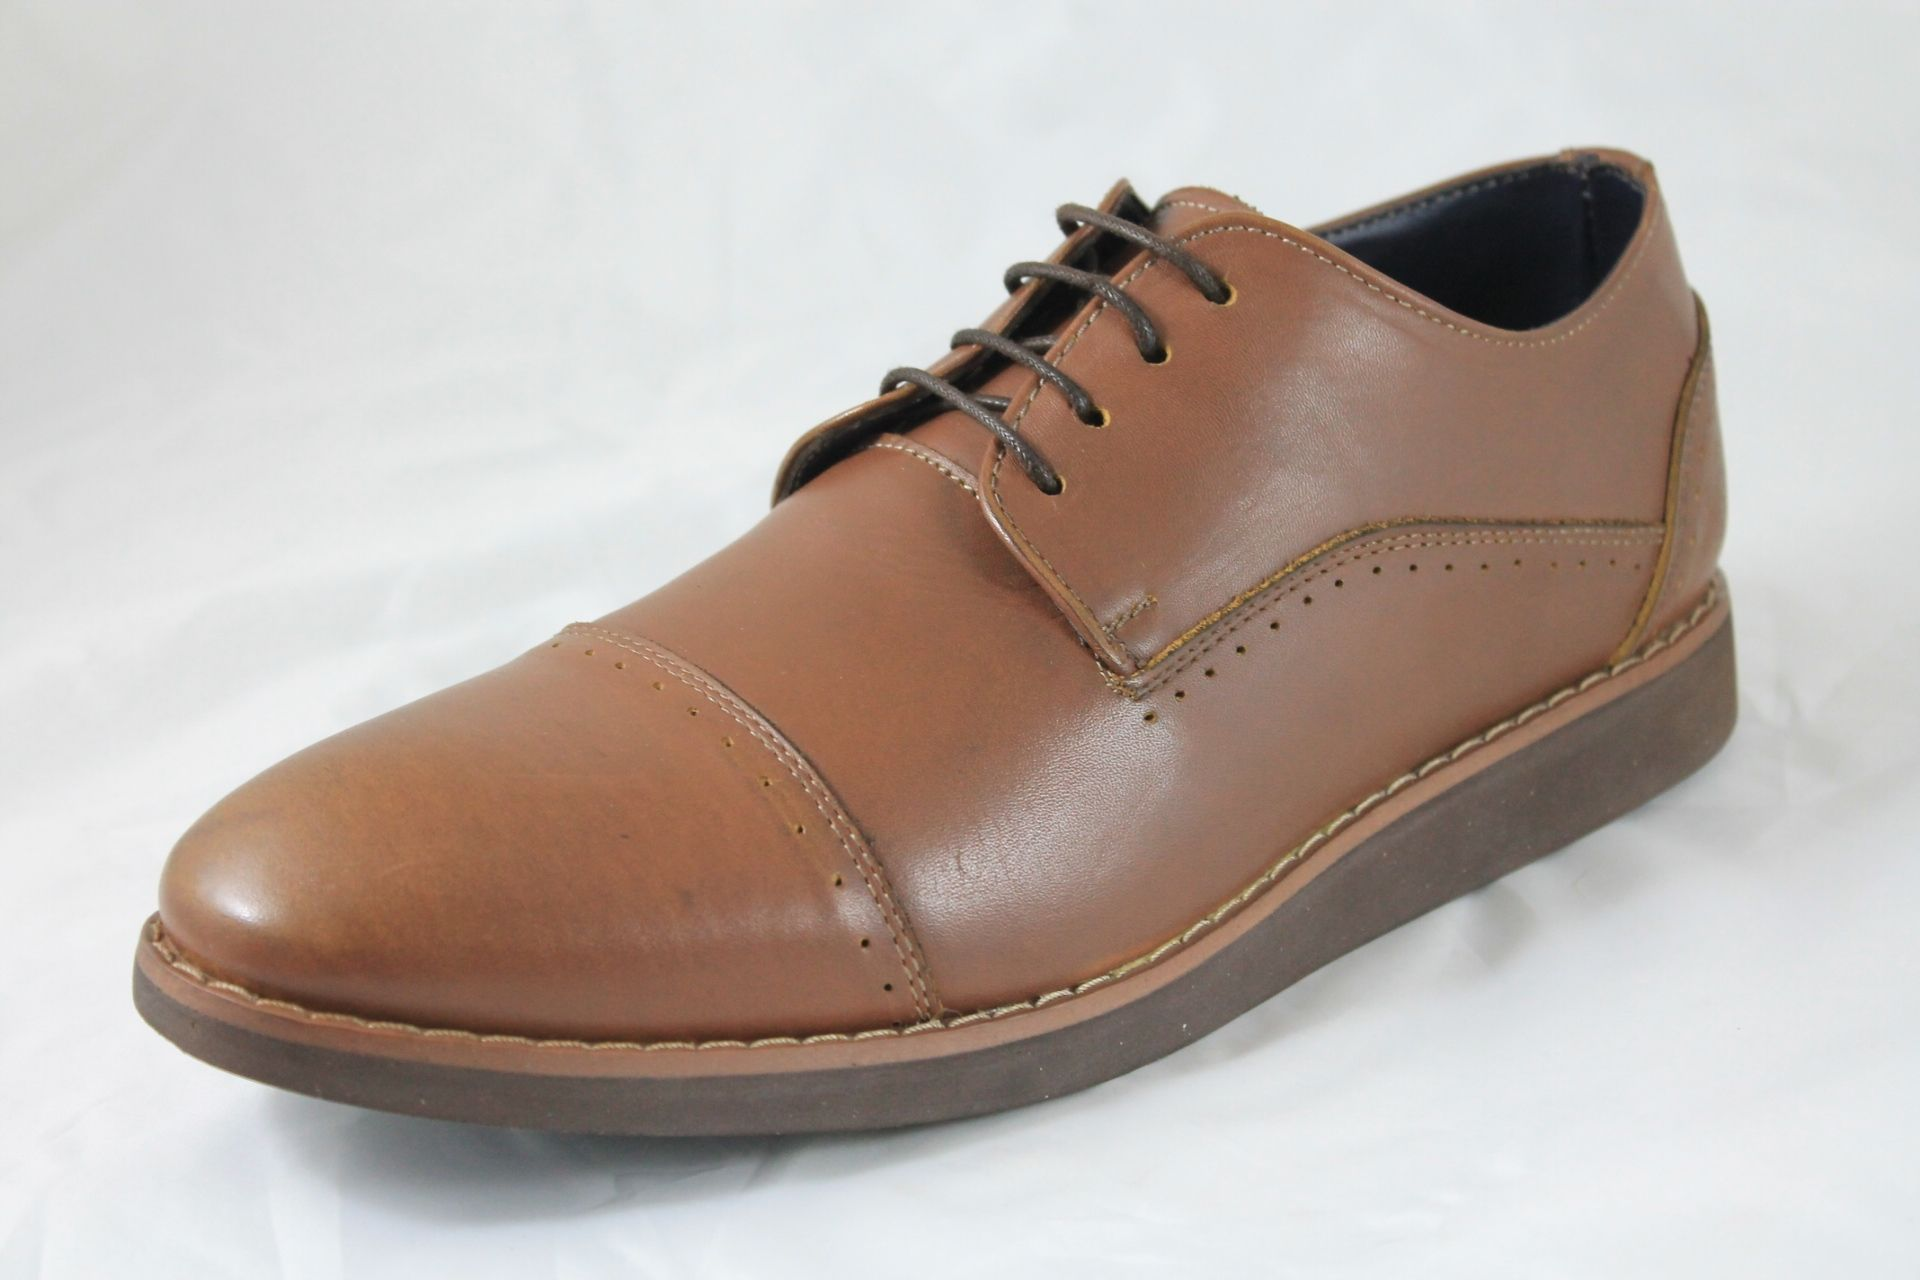 425cd00dd سعر Shoebox Leather Casual Shoes - Light Brown فى مصر | جوميا ...